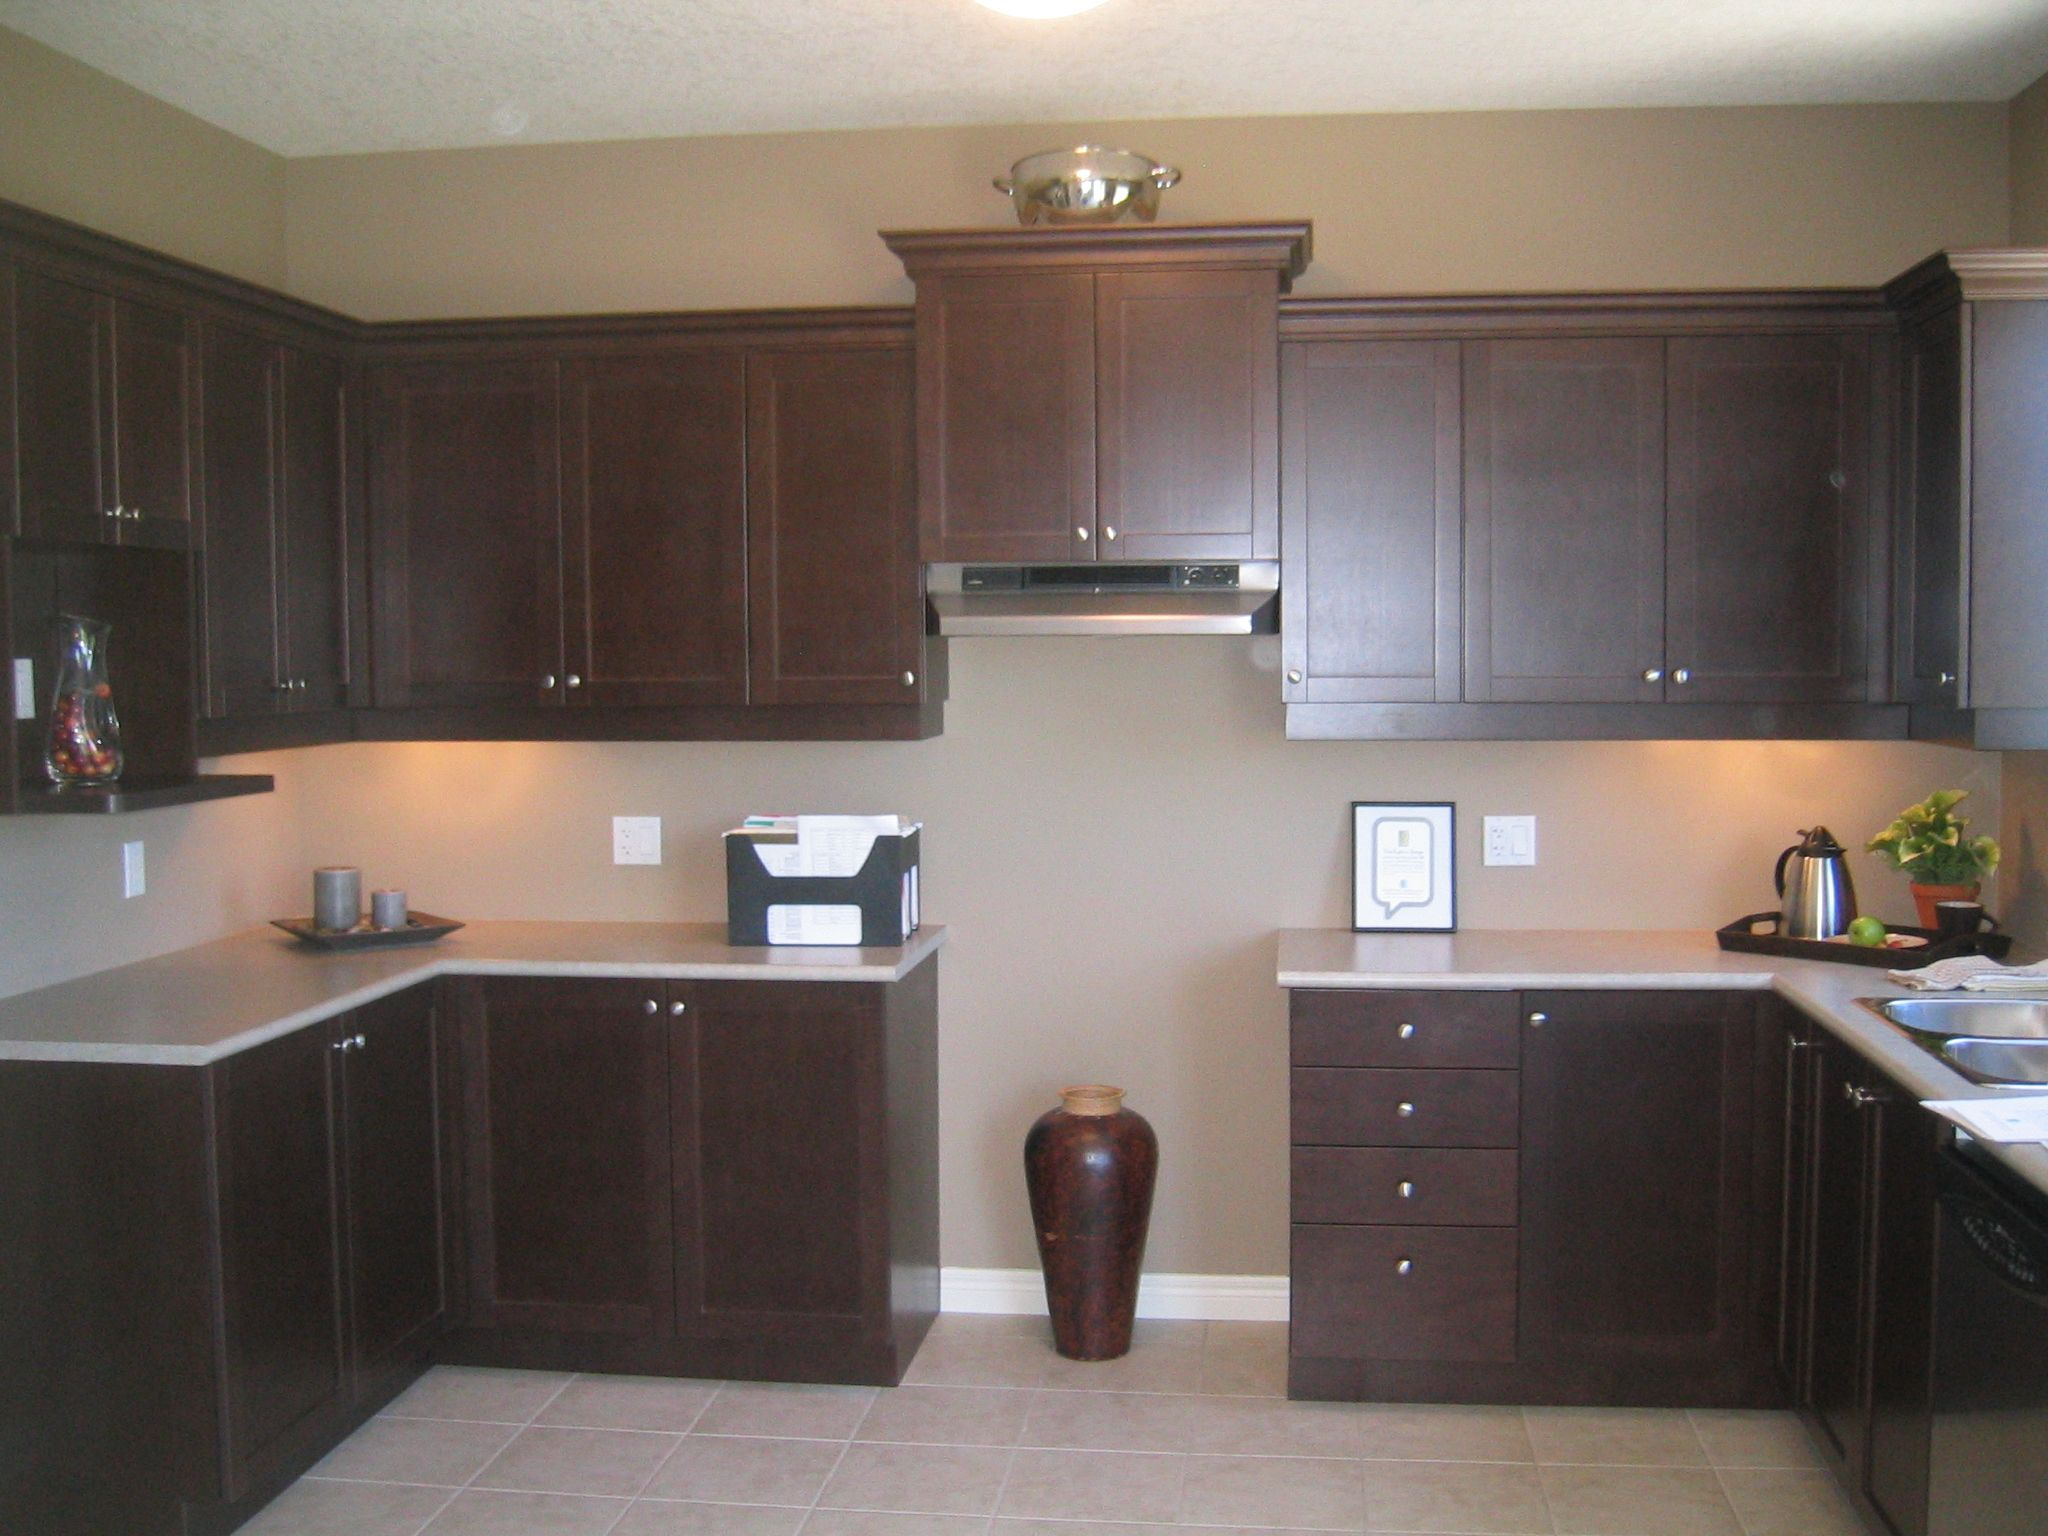 Best What Color To Paint Kitchen Walls With Espresso Cabinets 400 x 300